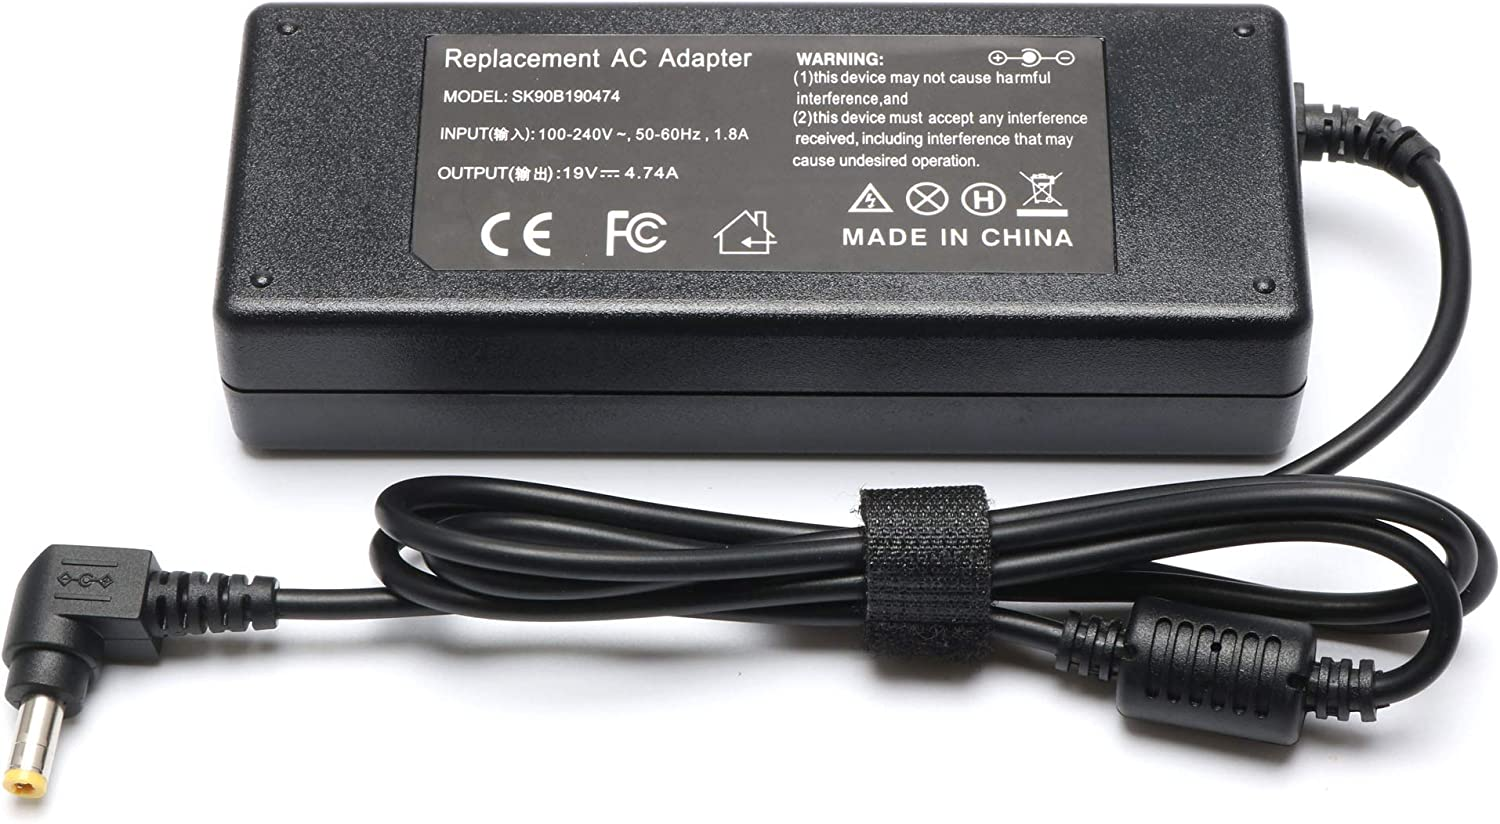 90W ASUS Laptop Charger Replacement for ASUS u56e k53e q550l k55a k52f k501u a53e n56v r510c x54c x551c a55a k55vd a53s a54c k55n n56dp x52f n56vj u50f k53s k53sv AC Adapter Power Supply Cord